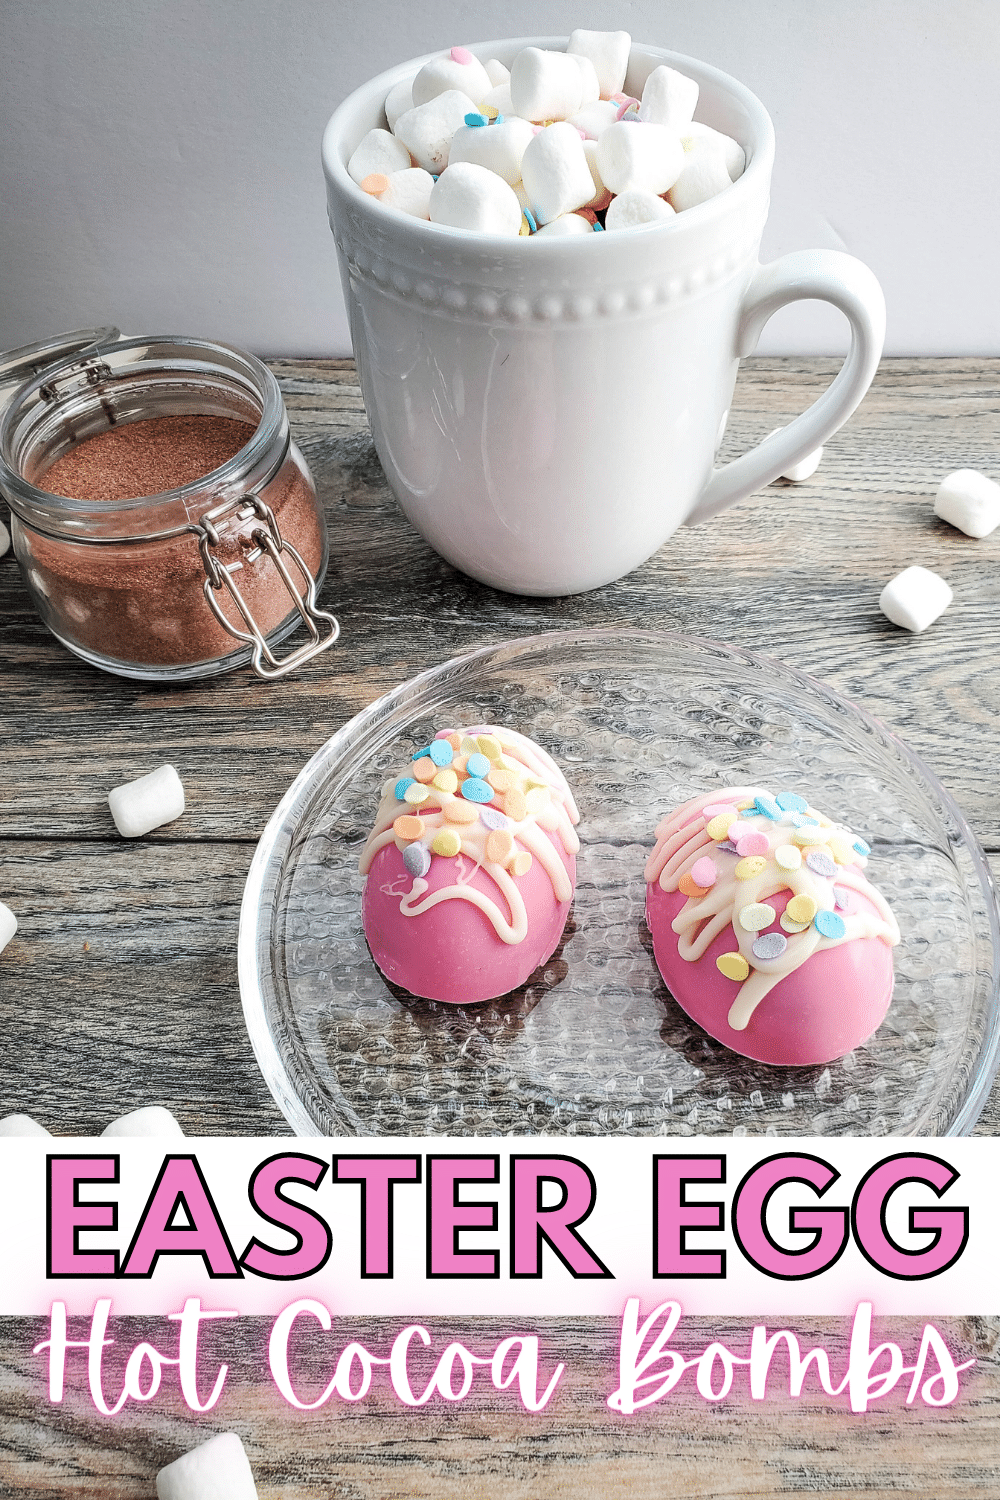 These Easter Egg Hot Cocoa Bombs make a fun and tasty addition to any Easter basket. Sweet, colorful, and festive! #easter #hotcocobombs #hotcocoa #easteregg via @wondermomwannab